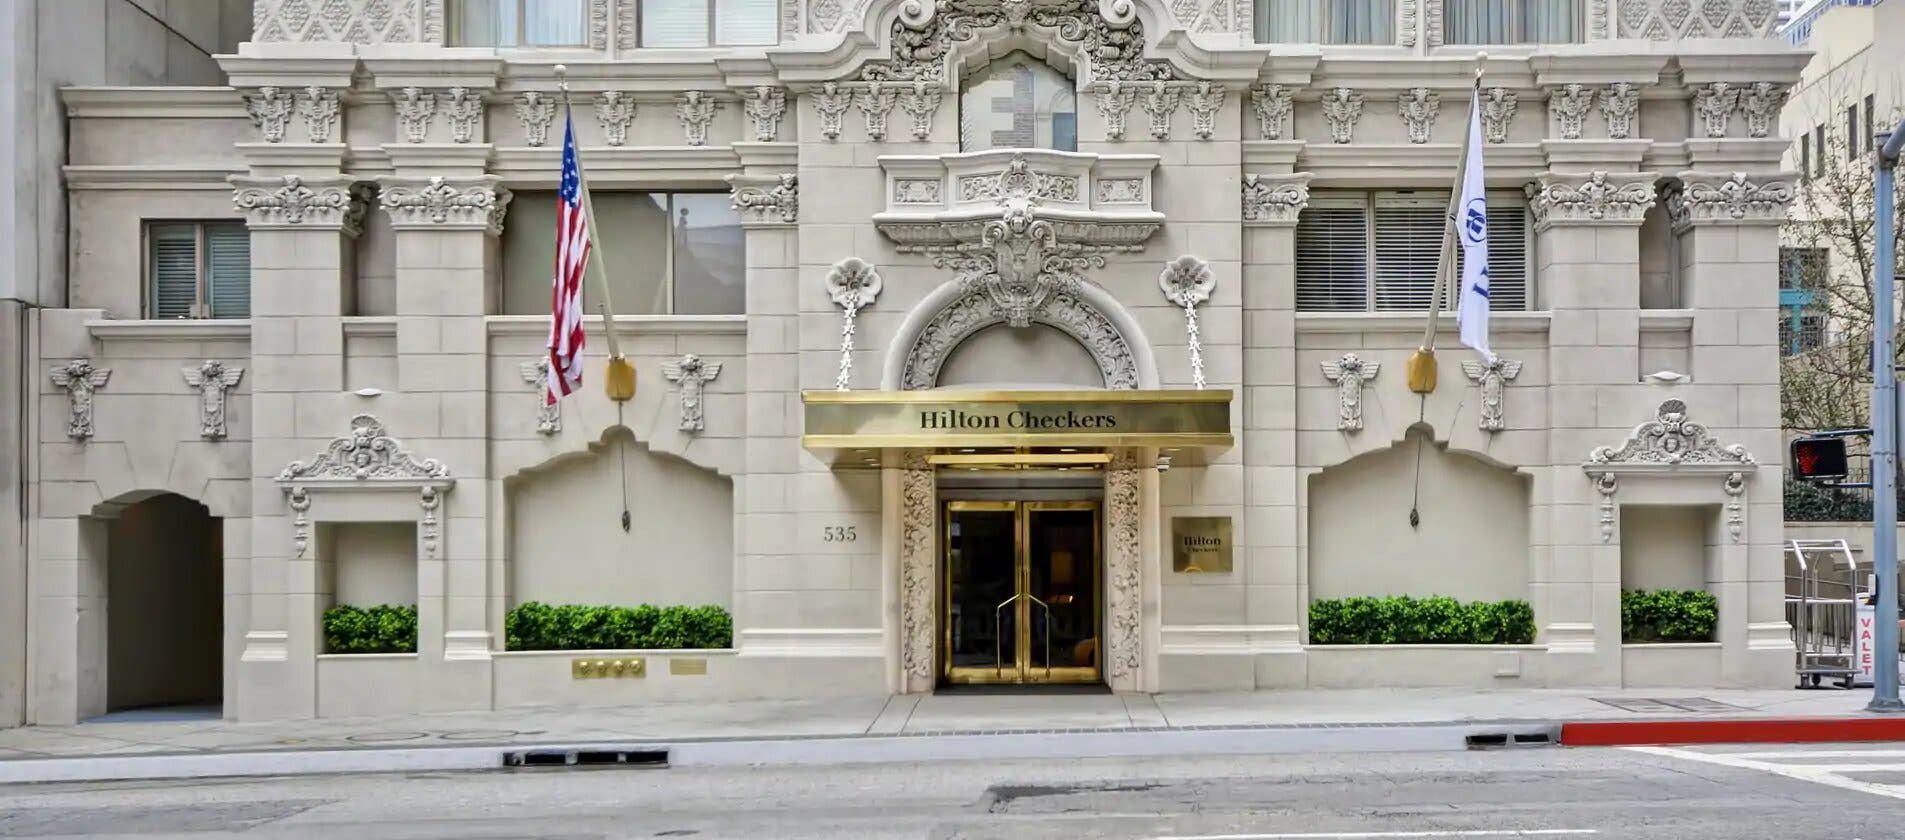 Hilton Checkers Los Angeles front entrance